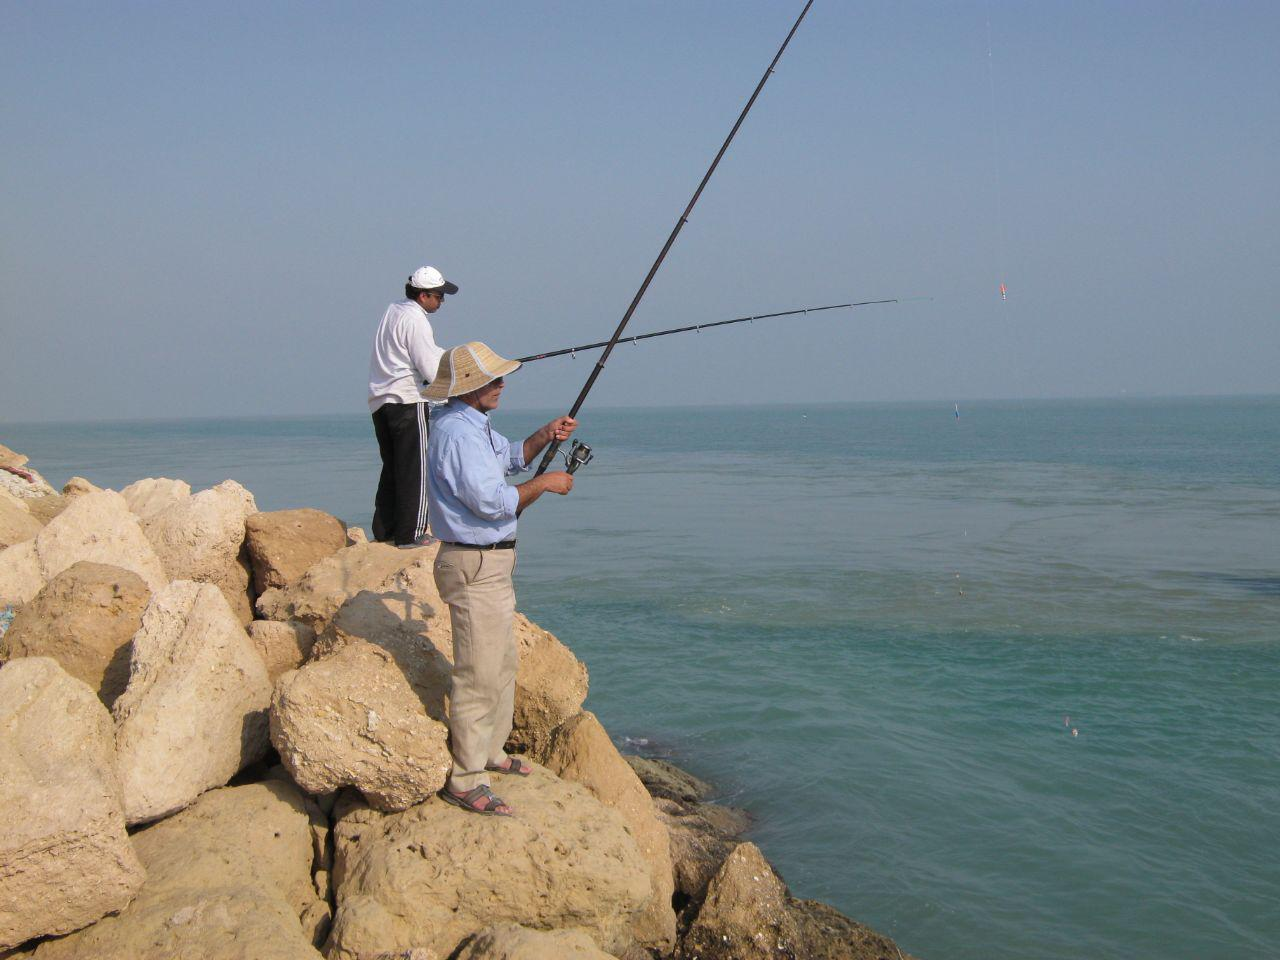 http://esfahanfishing.persiangig.com/hosin_noparvar/fishing/photo_2016-01-08_23-48-27.jpg